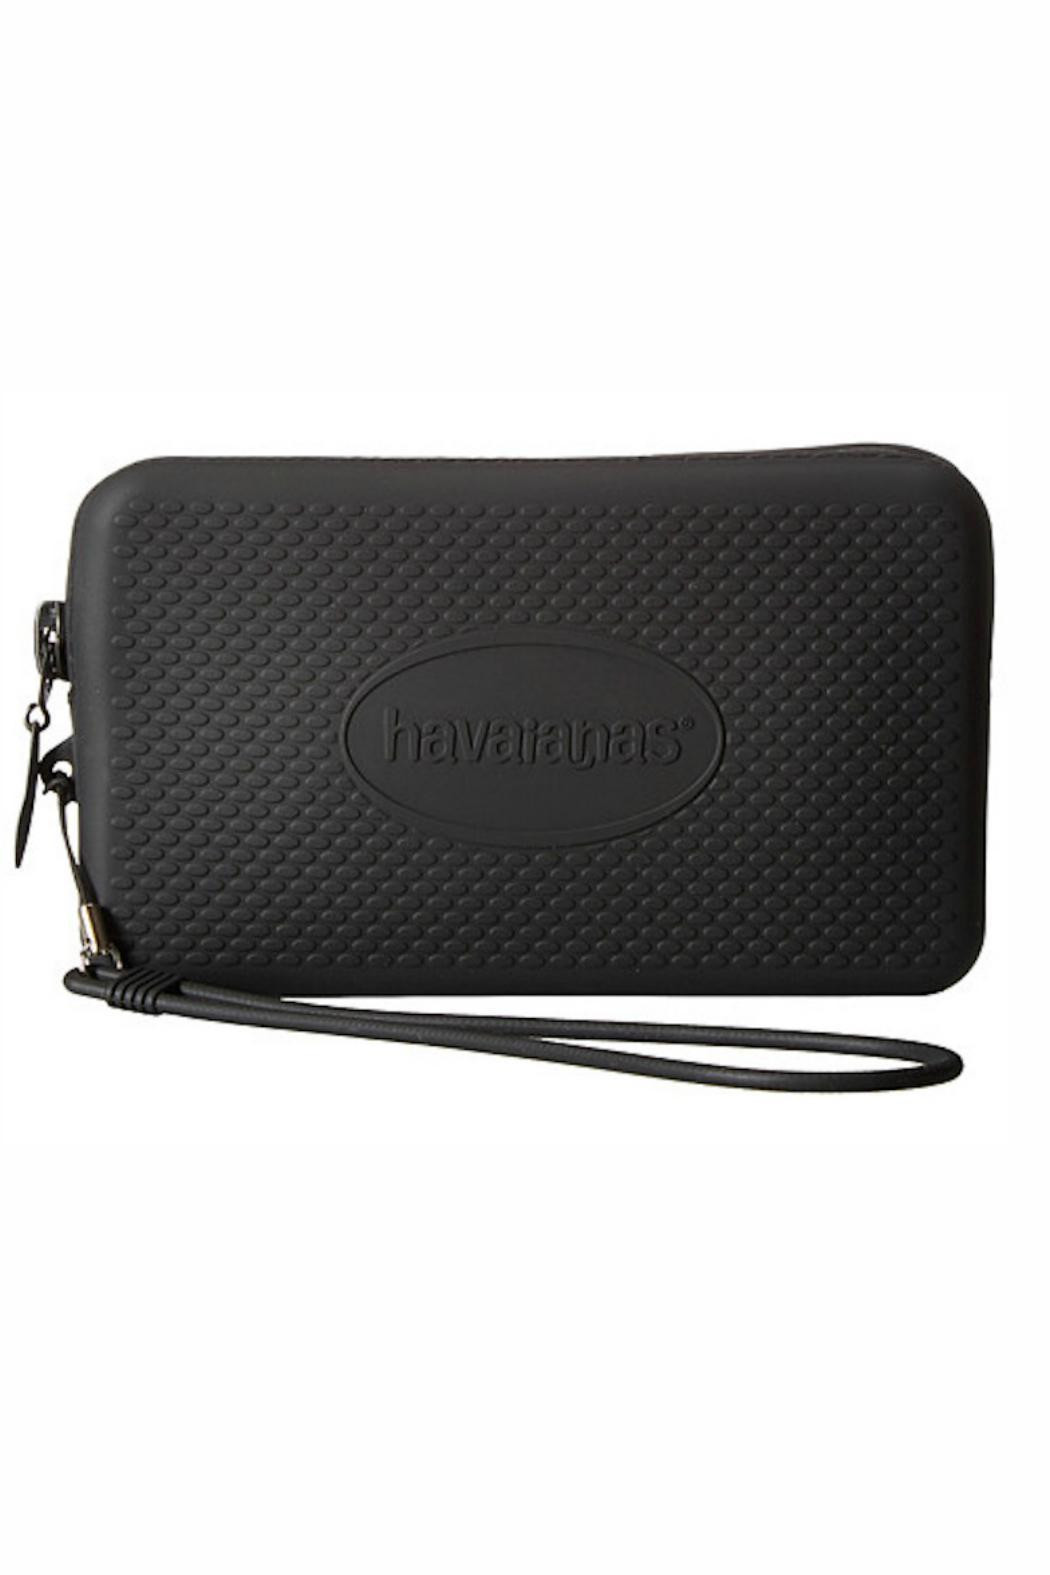 HAVAIANAS MINI BAG WALLET